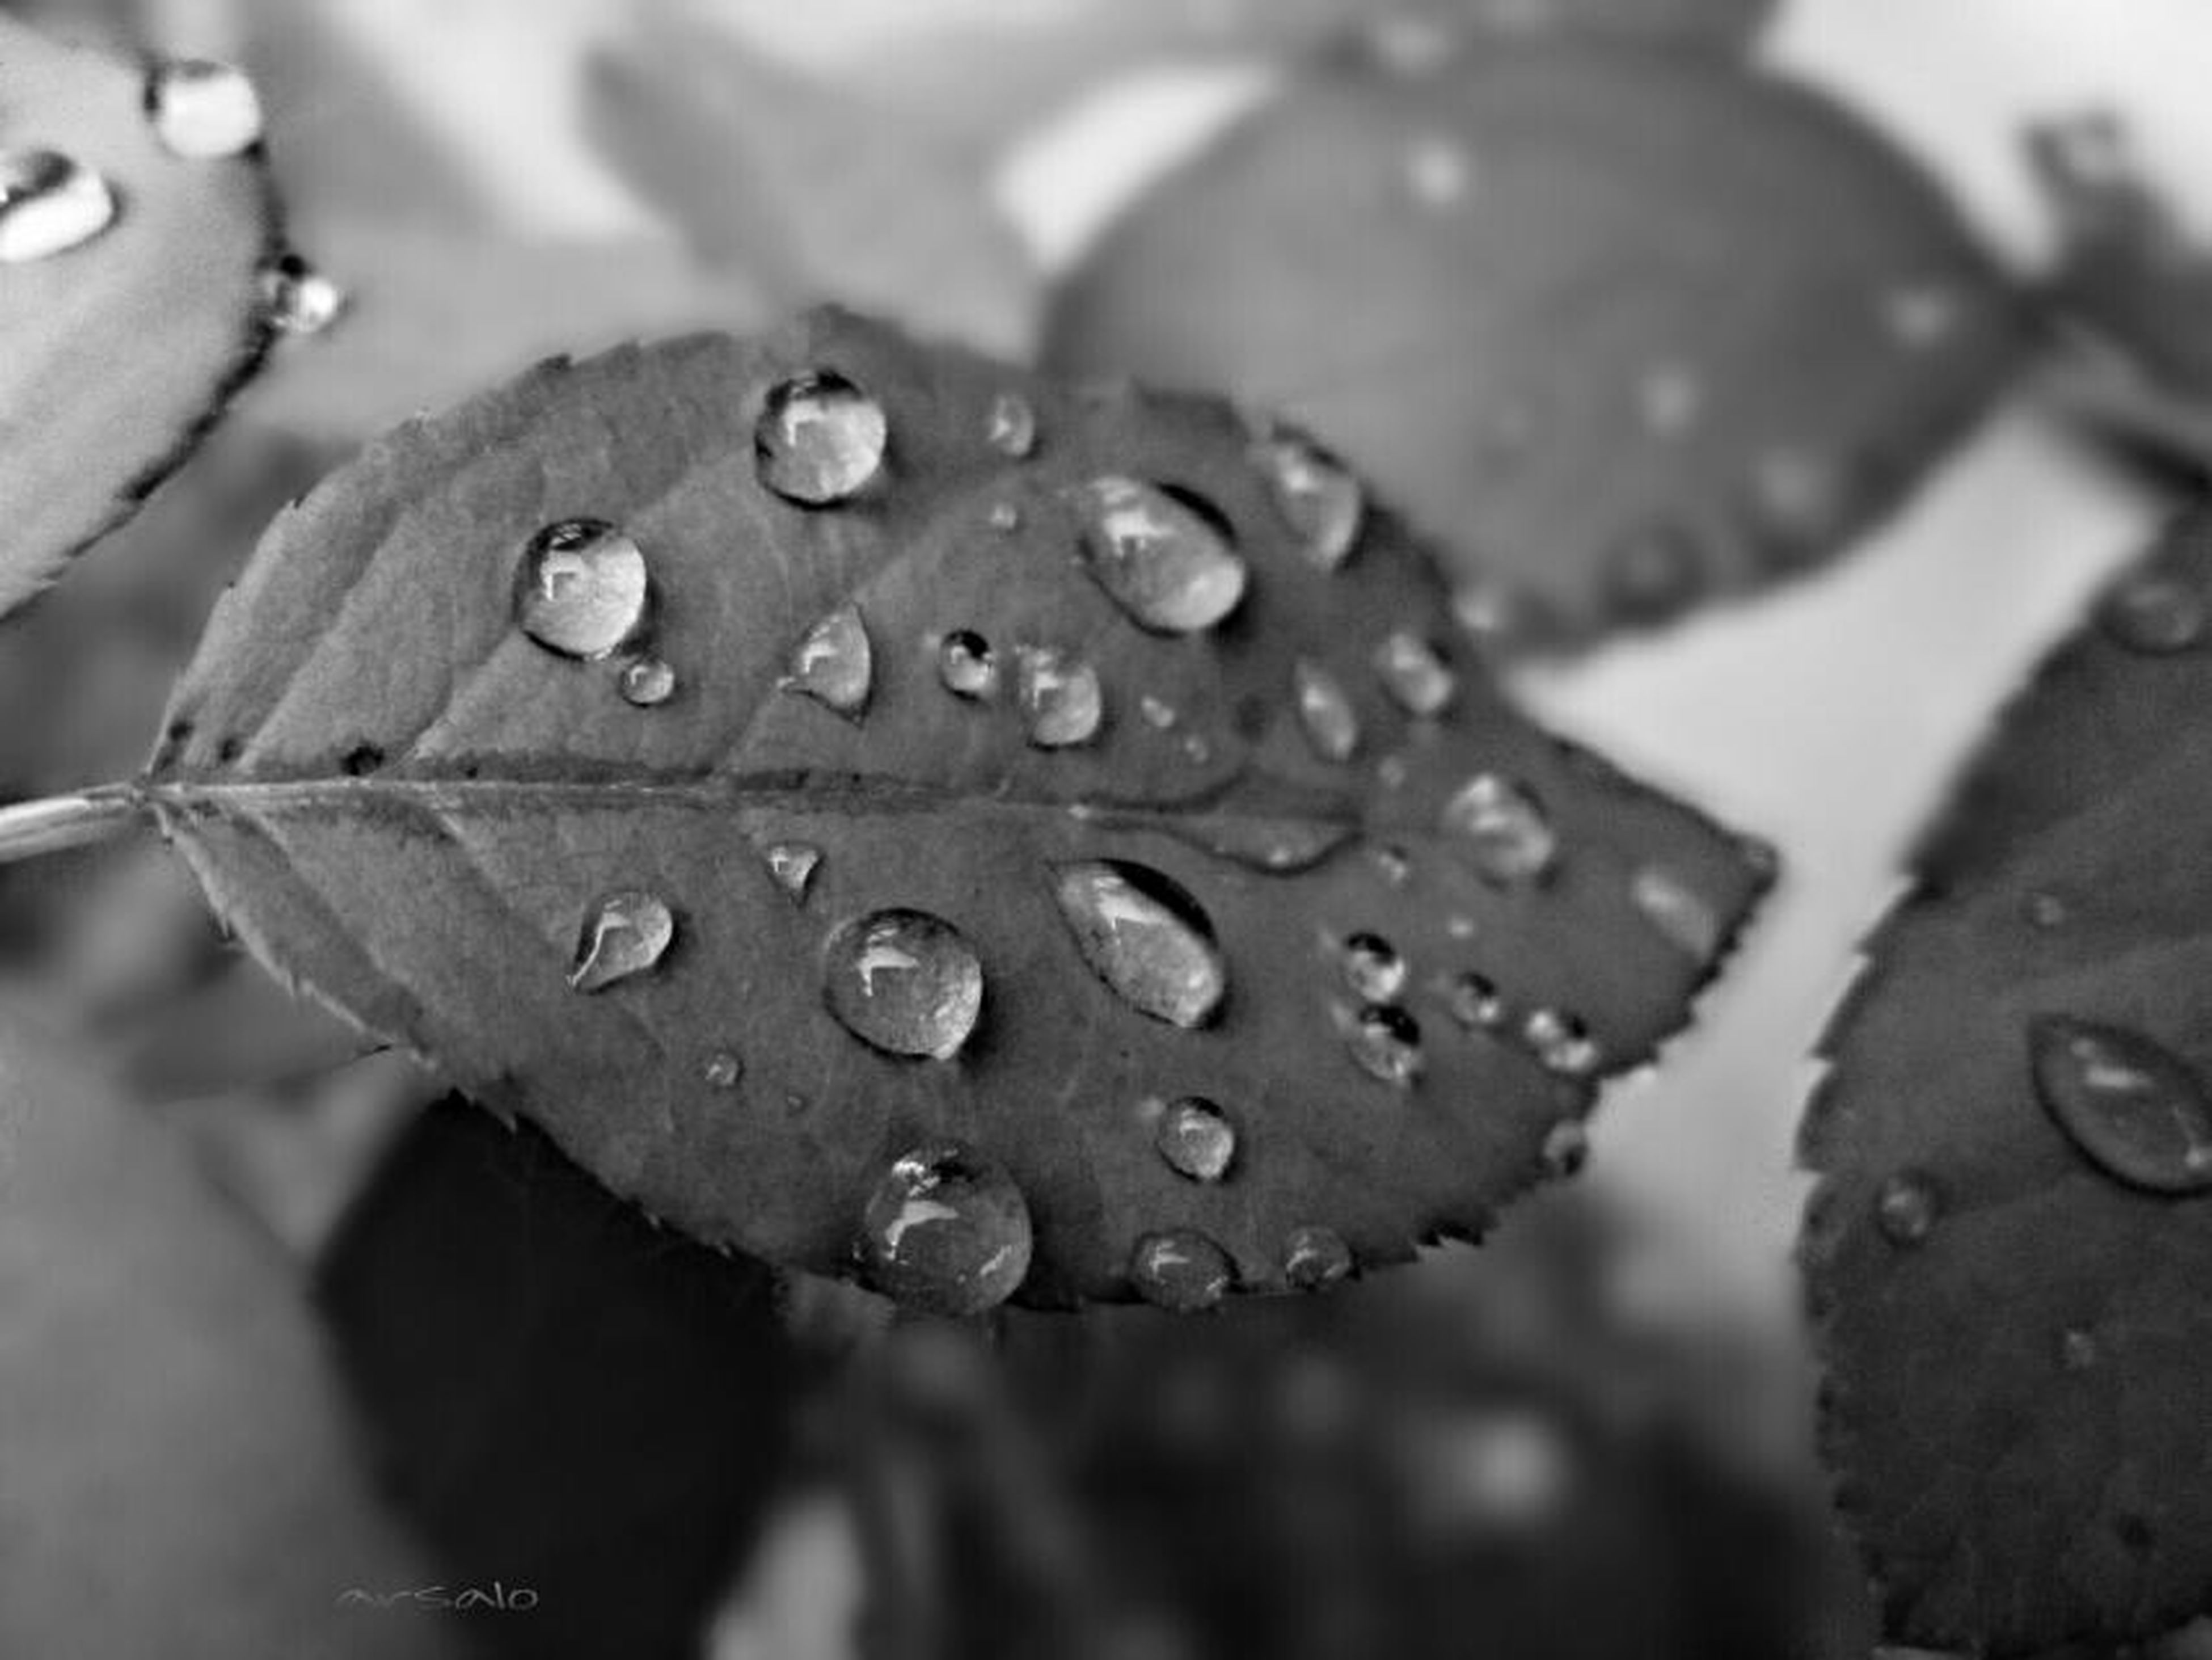 drop, water, wet, freshness, close-up, dew, fragility, raindrop, growth, focus on foreground, beauty in nature, flower, droplet, nature, leaf, rain, water drop, plant, petal, purity